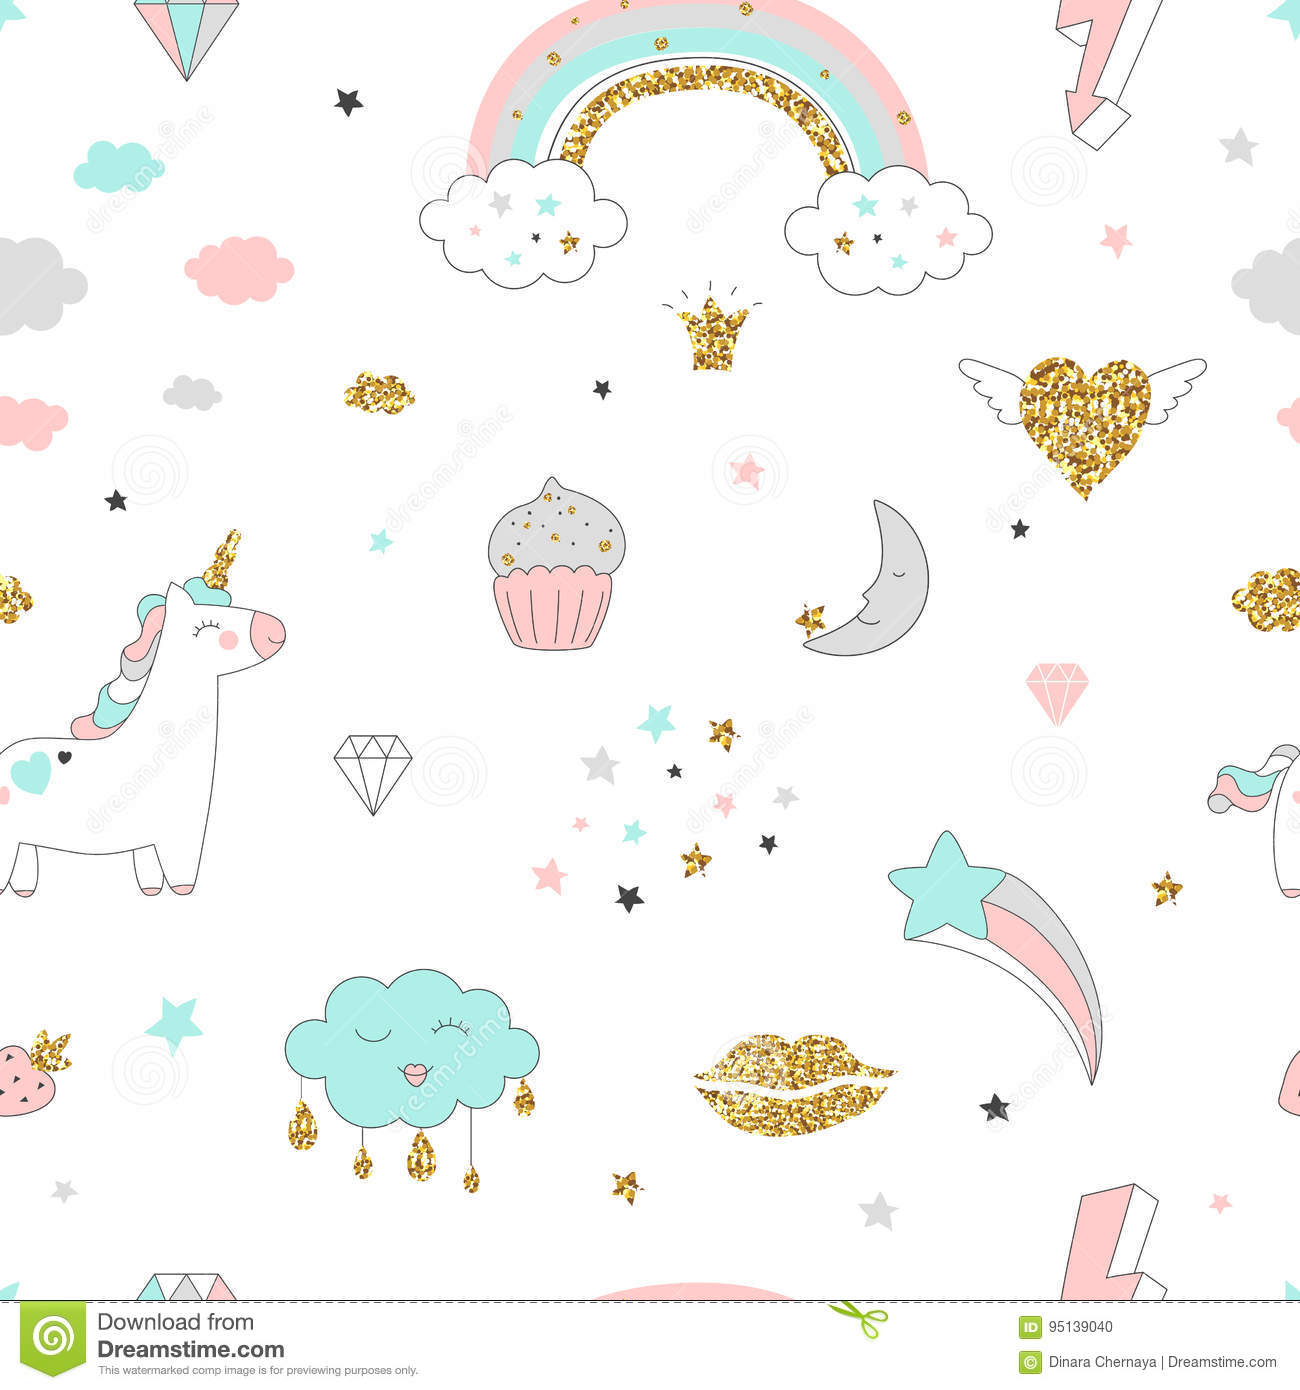 Magic design seamless pattern with unicorn, rainbow, hearts, clouds and others elements.